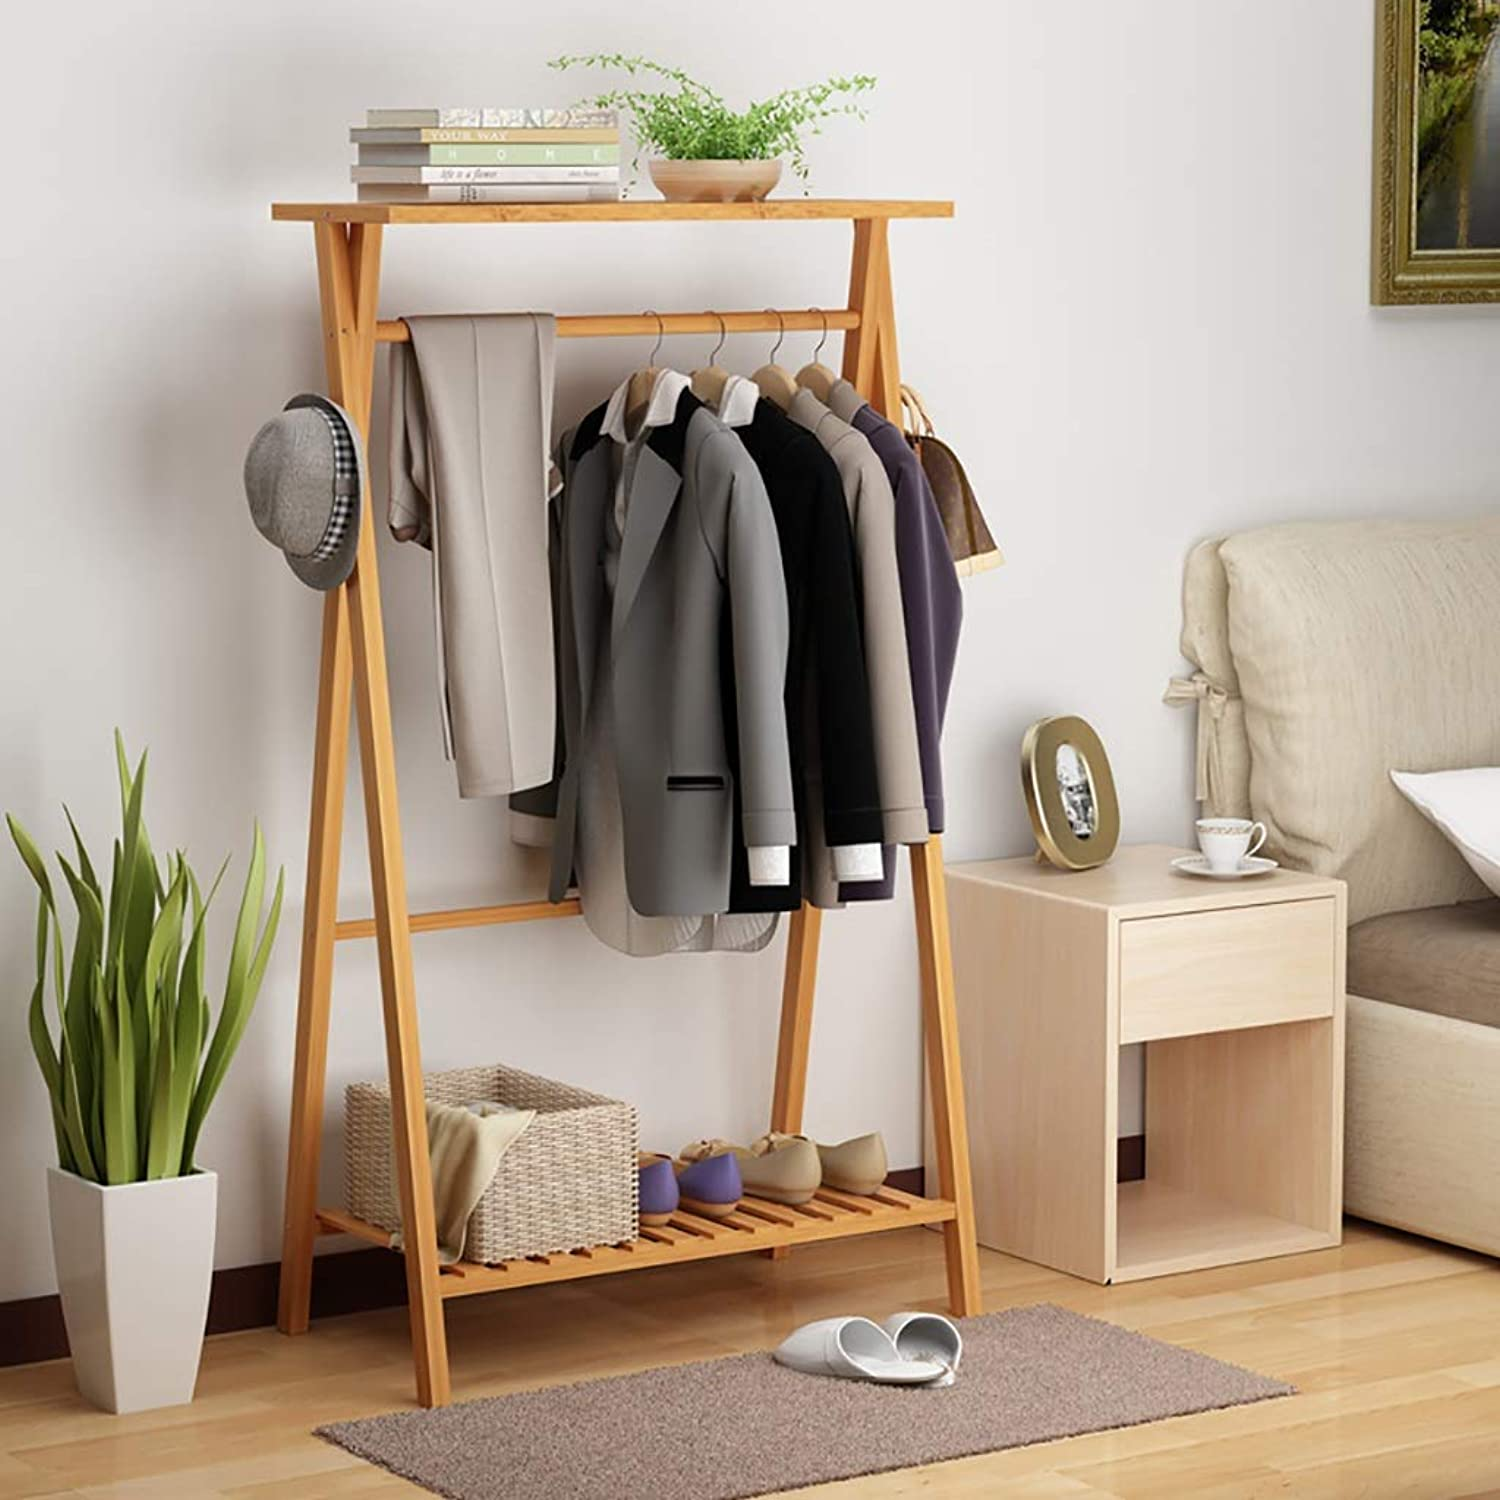 NSS Coat Rack Floor-Standing Solid Wood Clothes Hanger Single Pole Clothes Tree Simple Suitable for Bedroom Living Room and Other Scenes Hall Tree